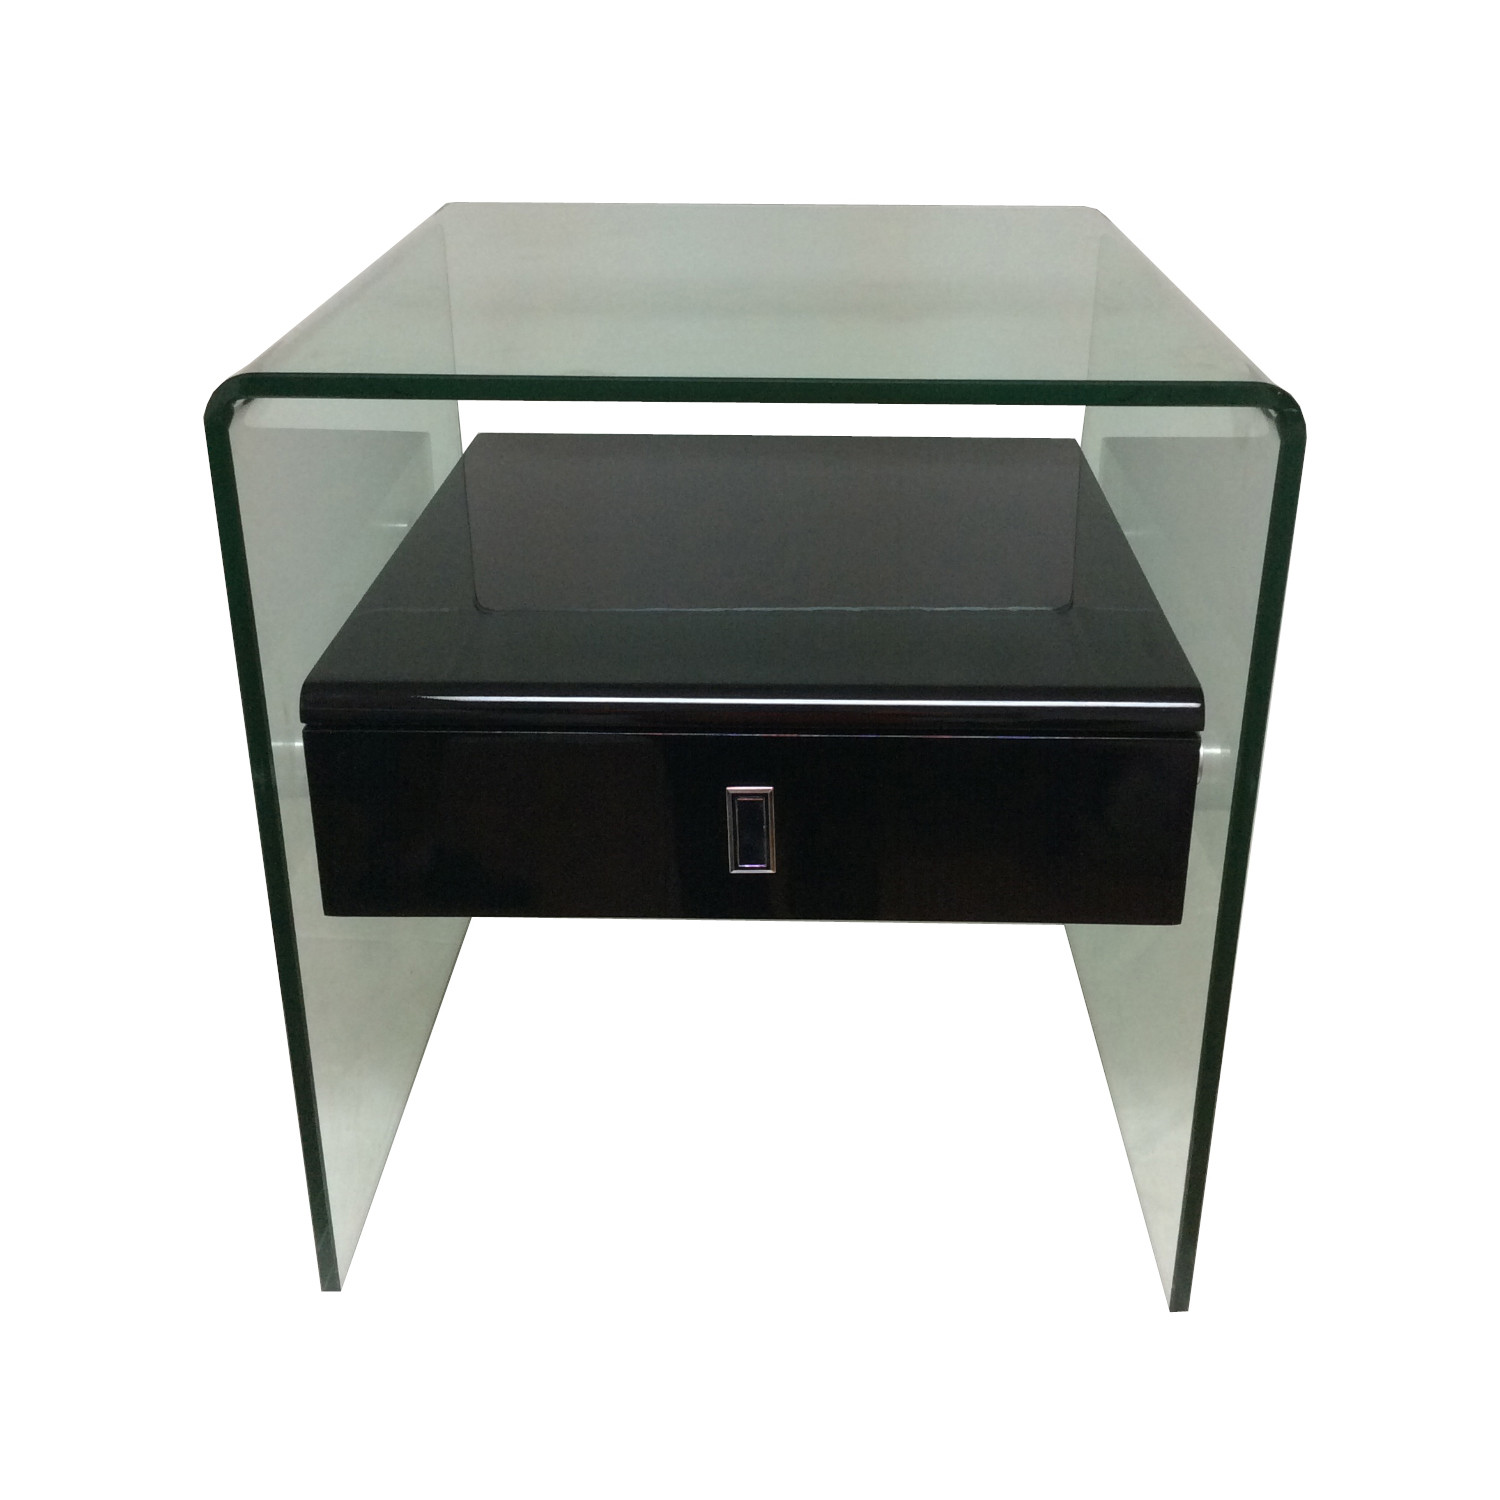 Mdf Cheap Price Coffee Table White High Gloss Center Table: Bari Side Table (White High Gloss)